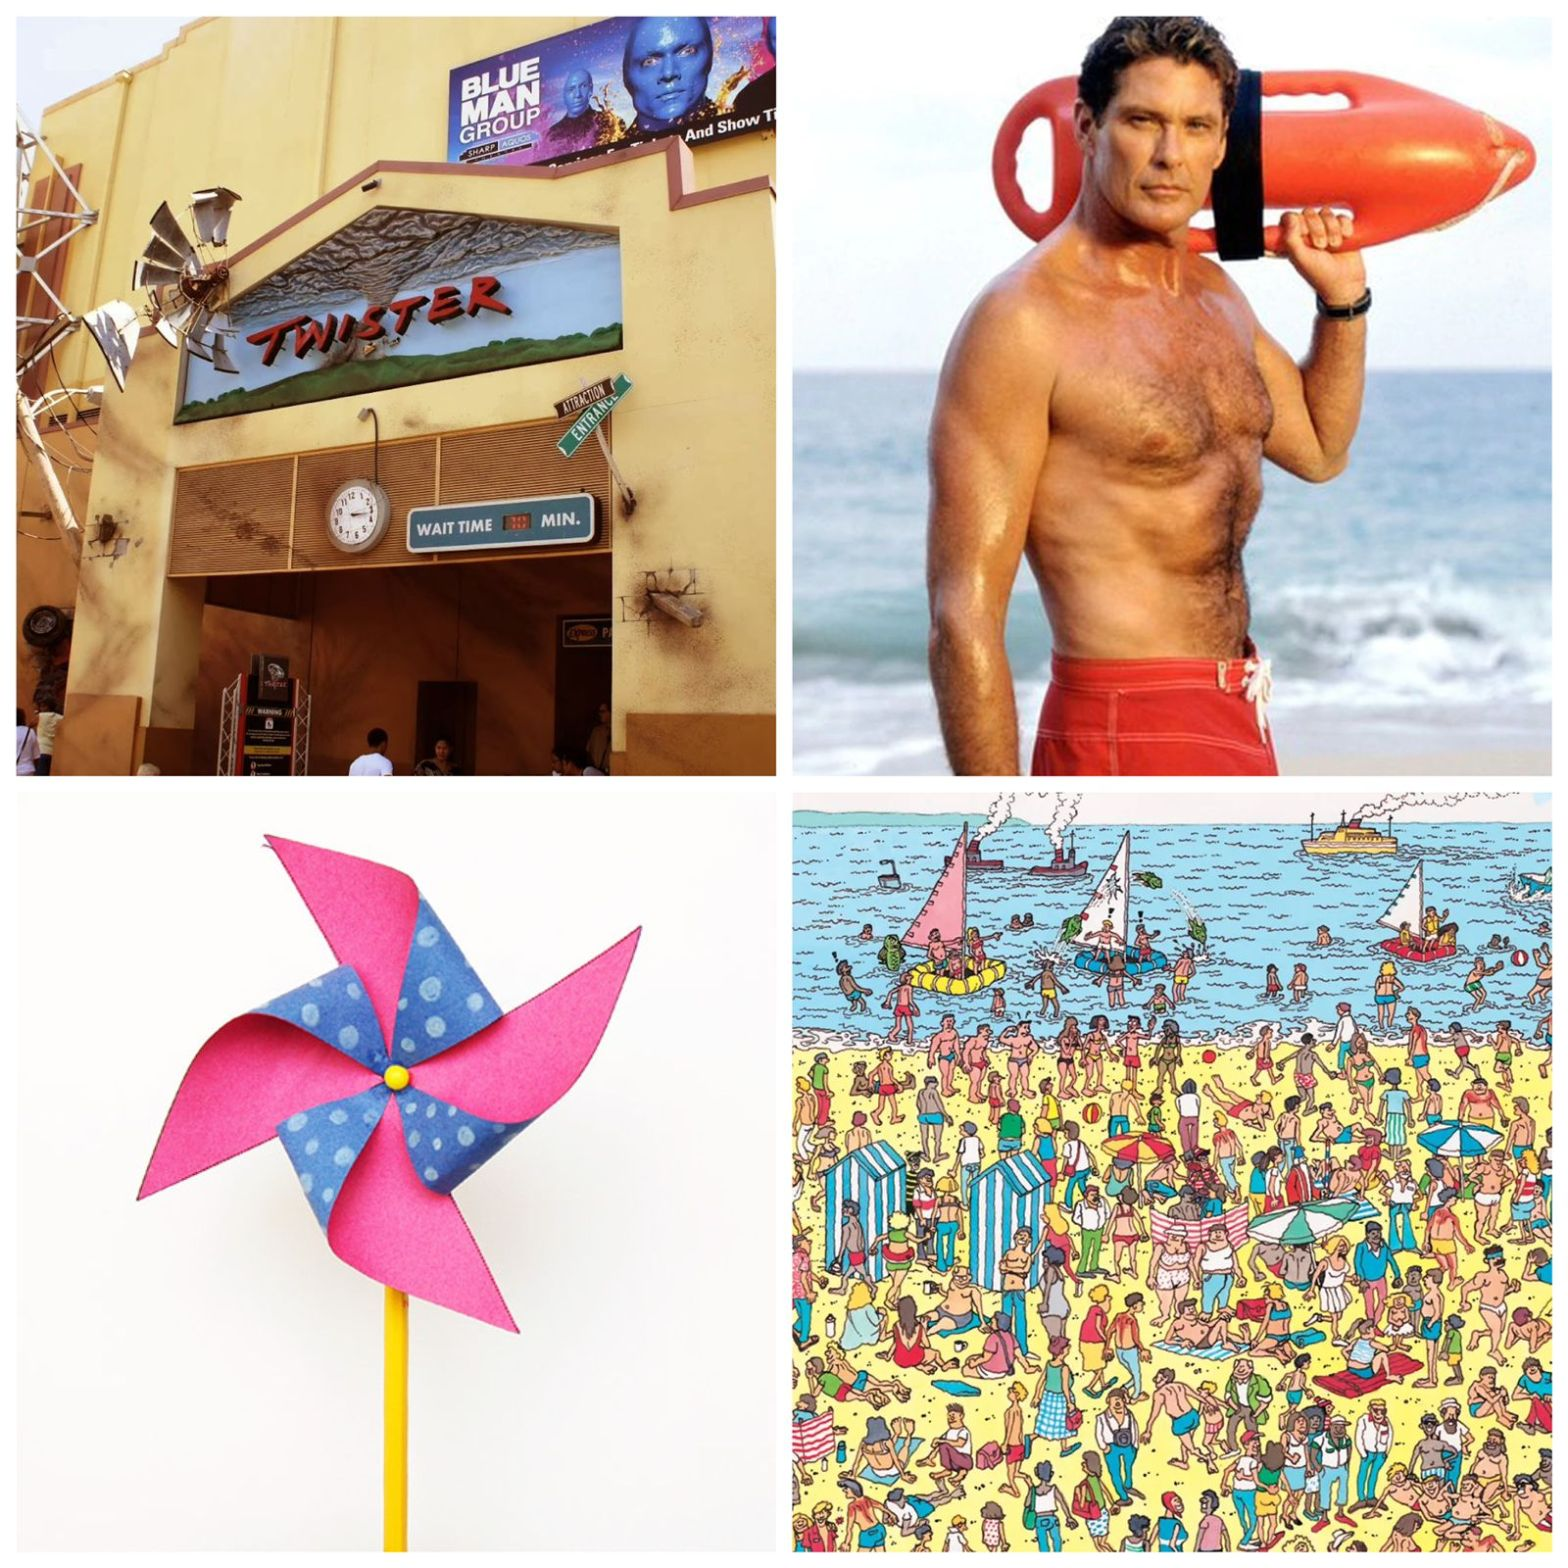 Twister - the attraction. David Hasselhoff shirtless. A pinwheel. And a Where's Waldo page.